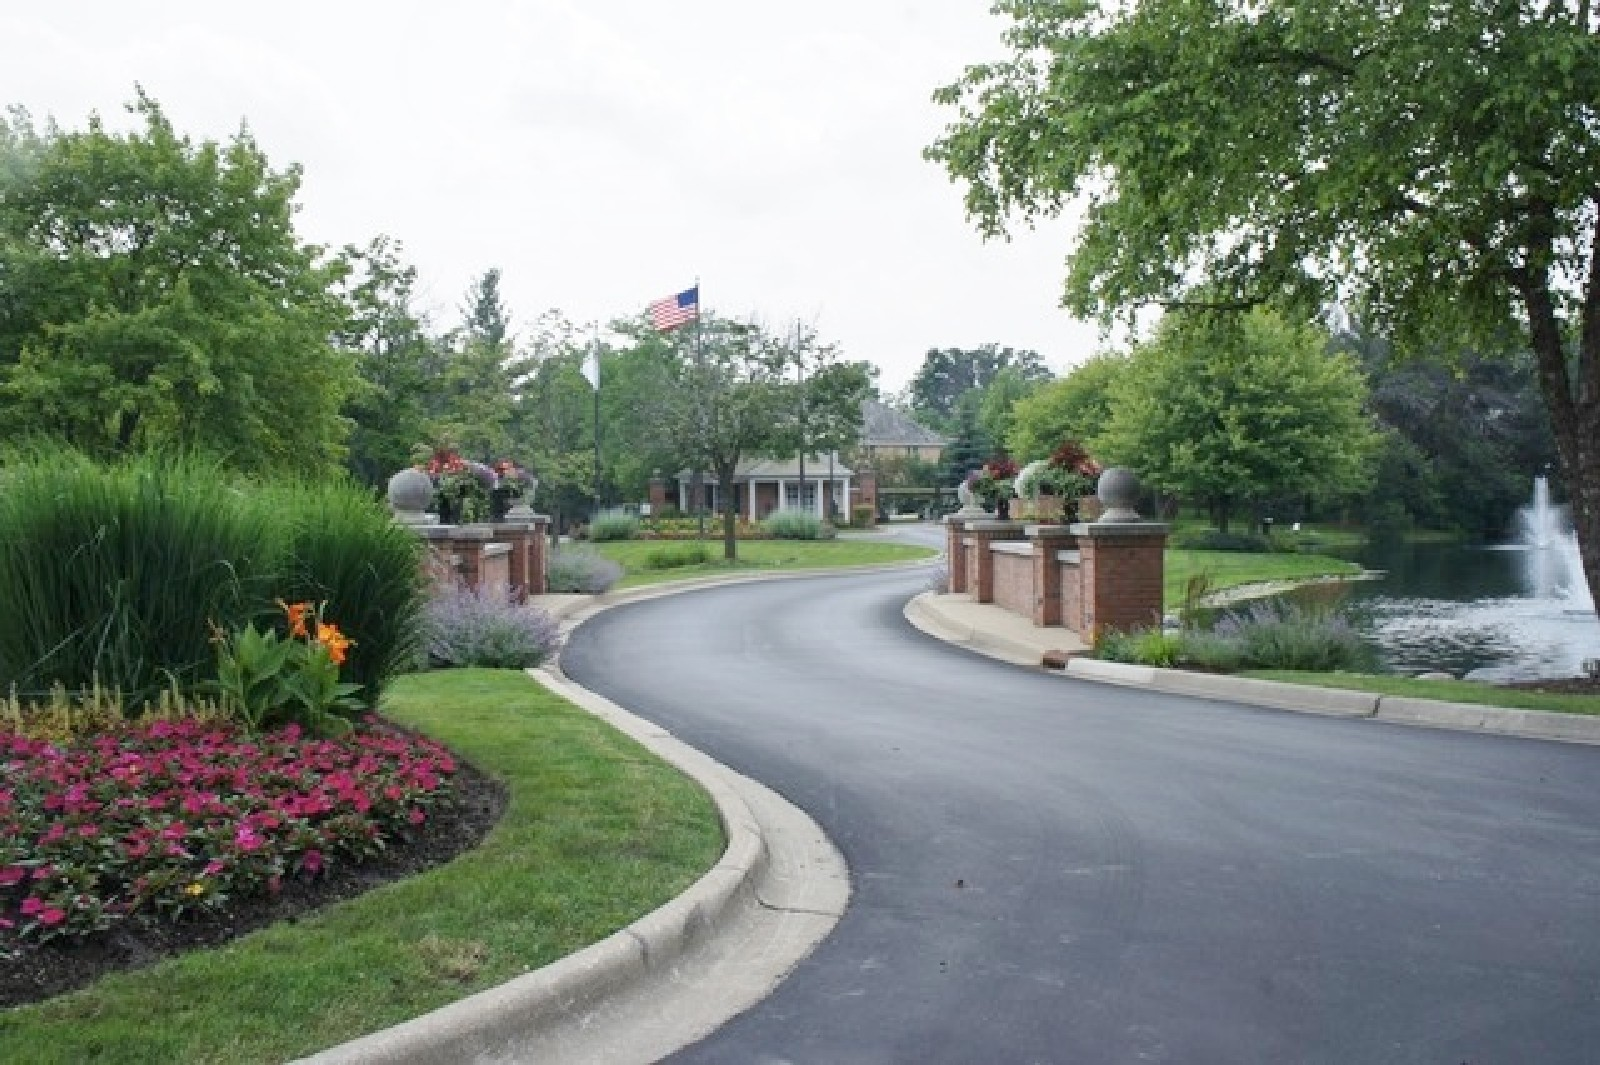 Terreno para Venda às 9620 Pacific Court Burr Ridge, Illinois, 60527 Estados Unidos